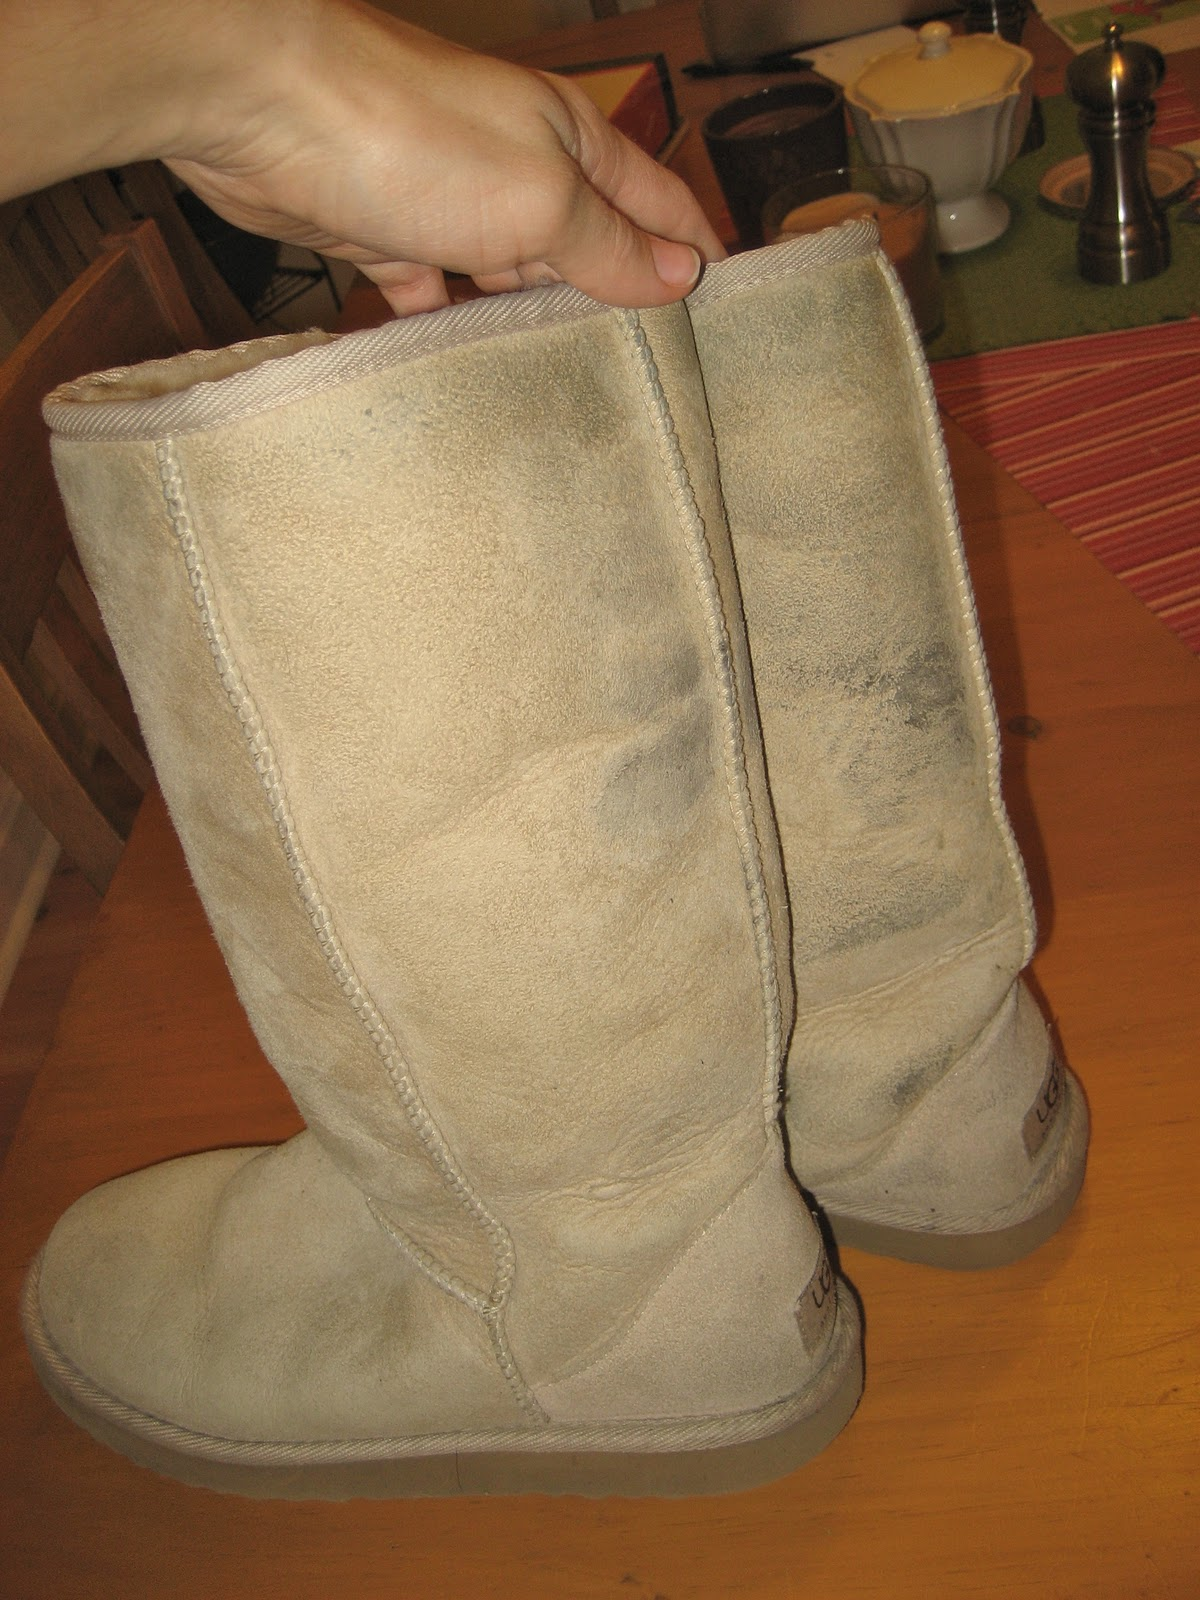 4ee5ad77dfc Cleaning Ugg Boots With Vinegar - cheap watches mgc-gas.com